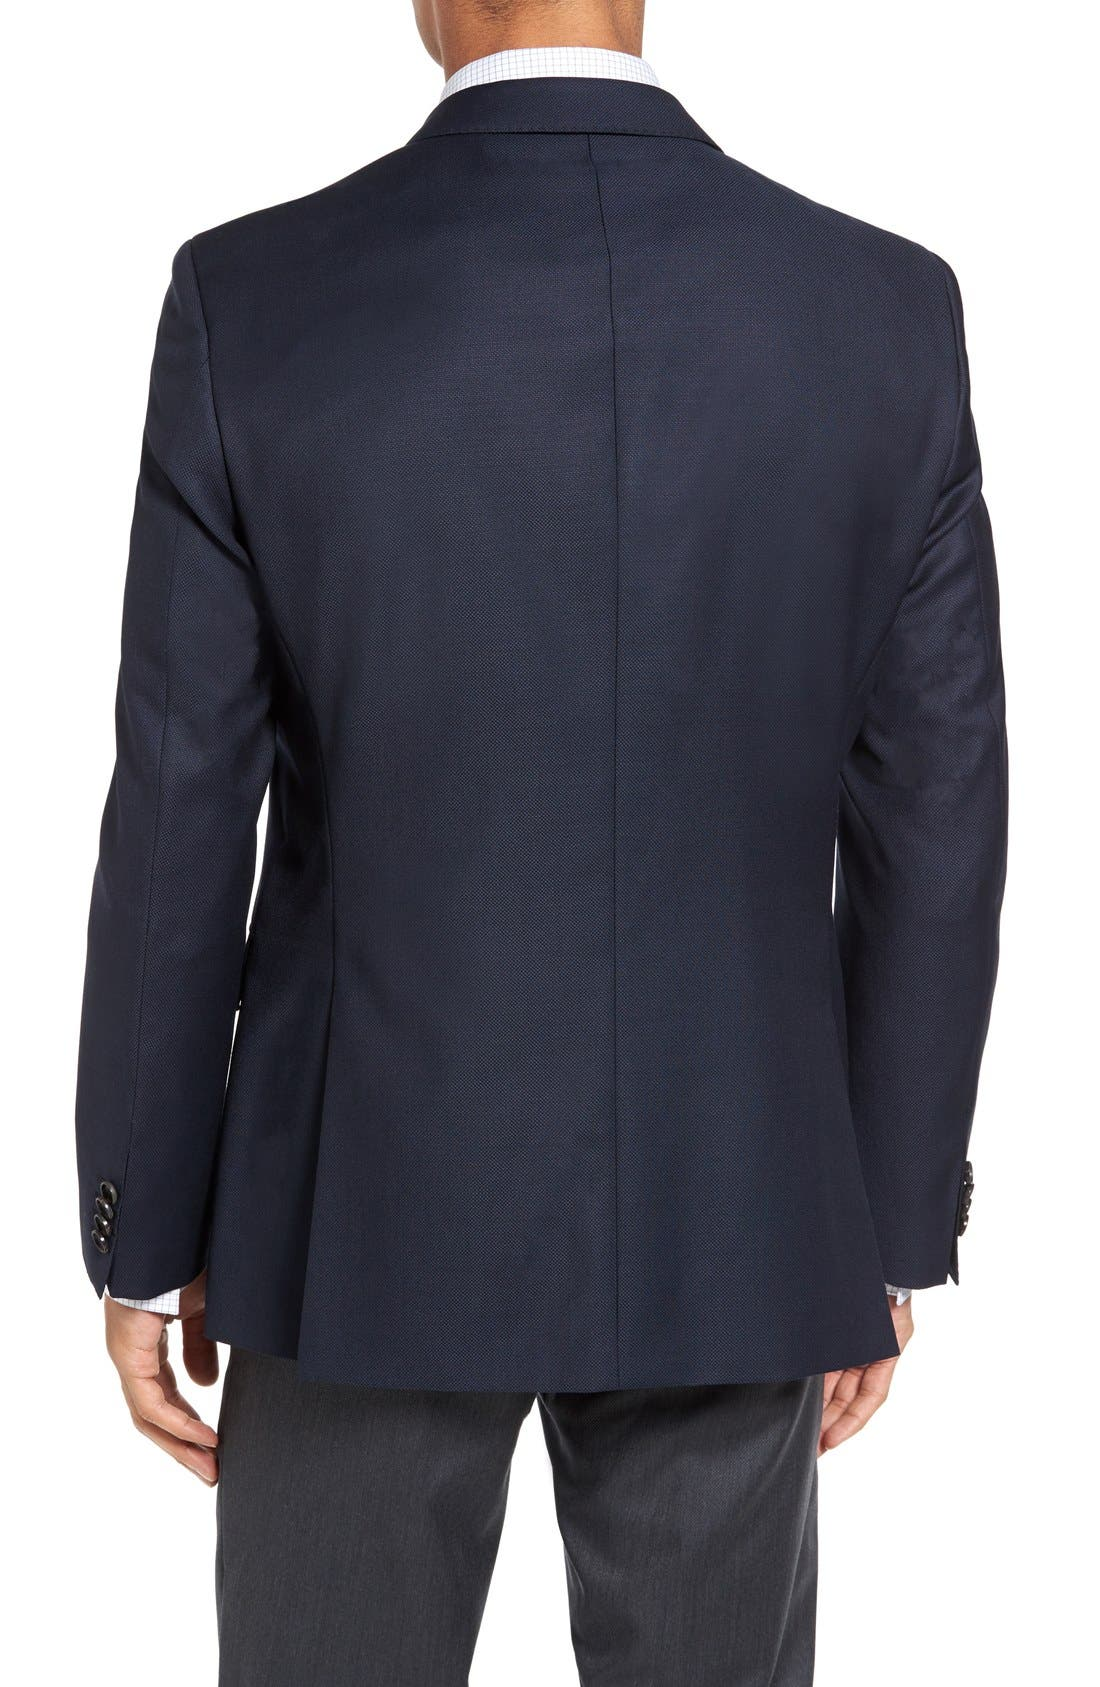 James Classic Fit Wool Blazer,                             Alternate thumbnail 2, color,                             Navy